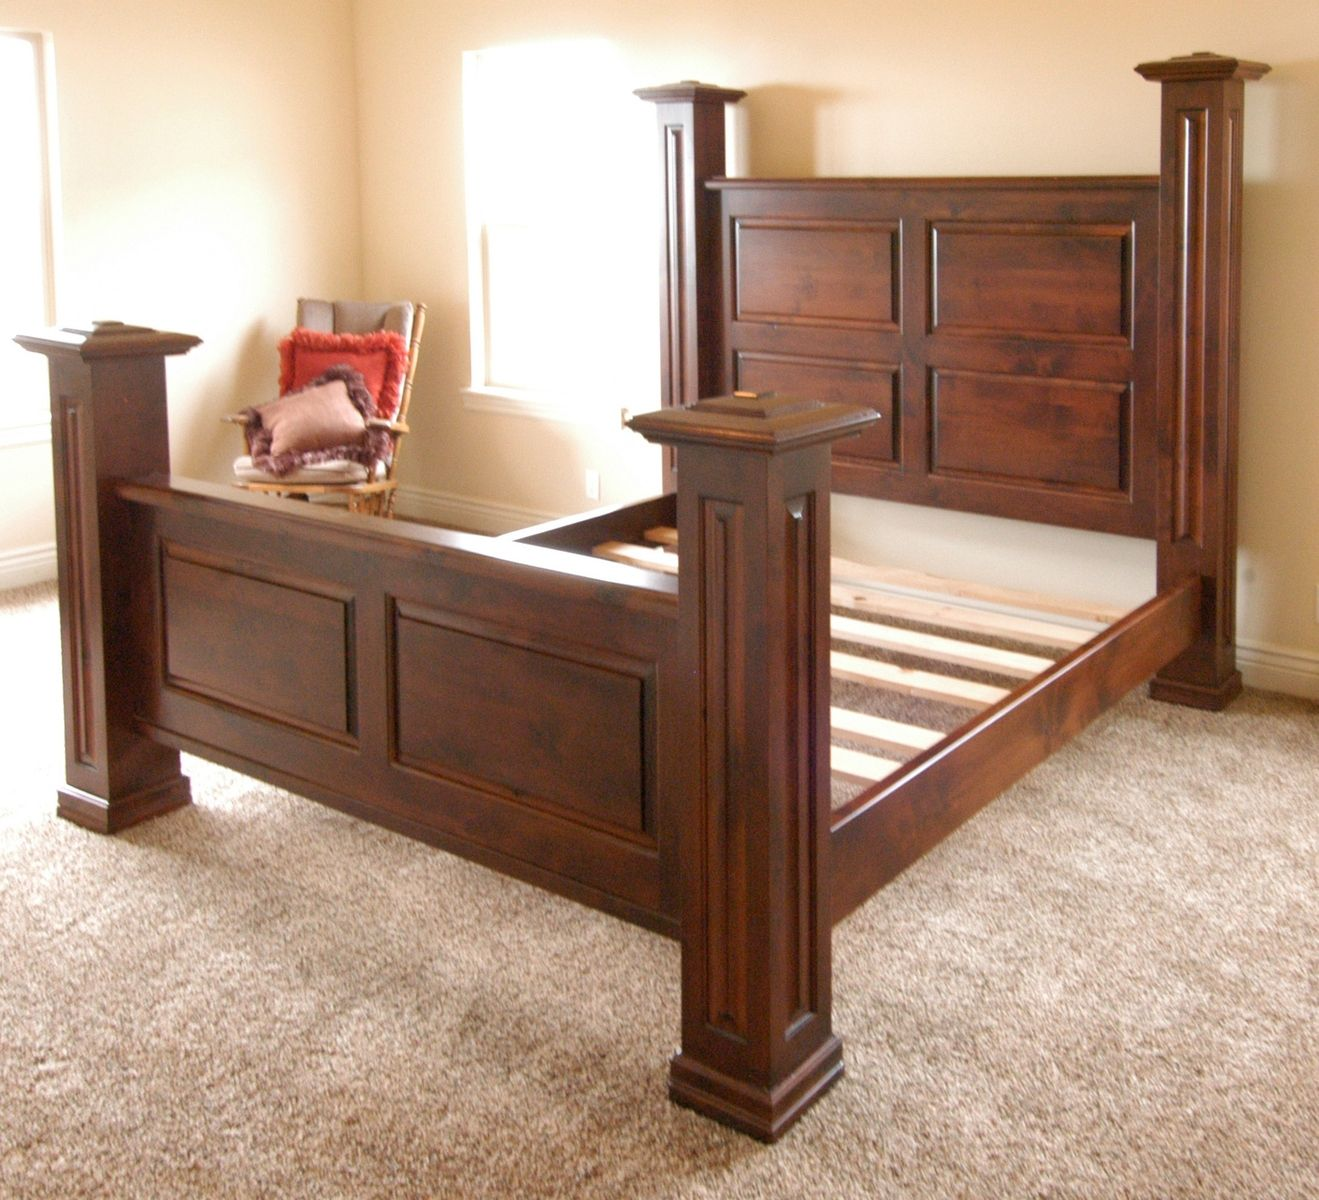 Custom Made Newel Post Bed by Terry\'s Fine Woodworking | CustomMade.com